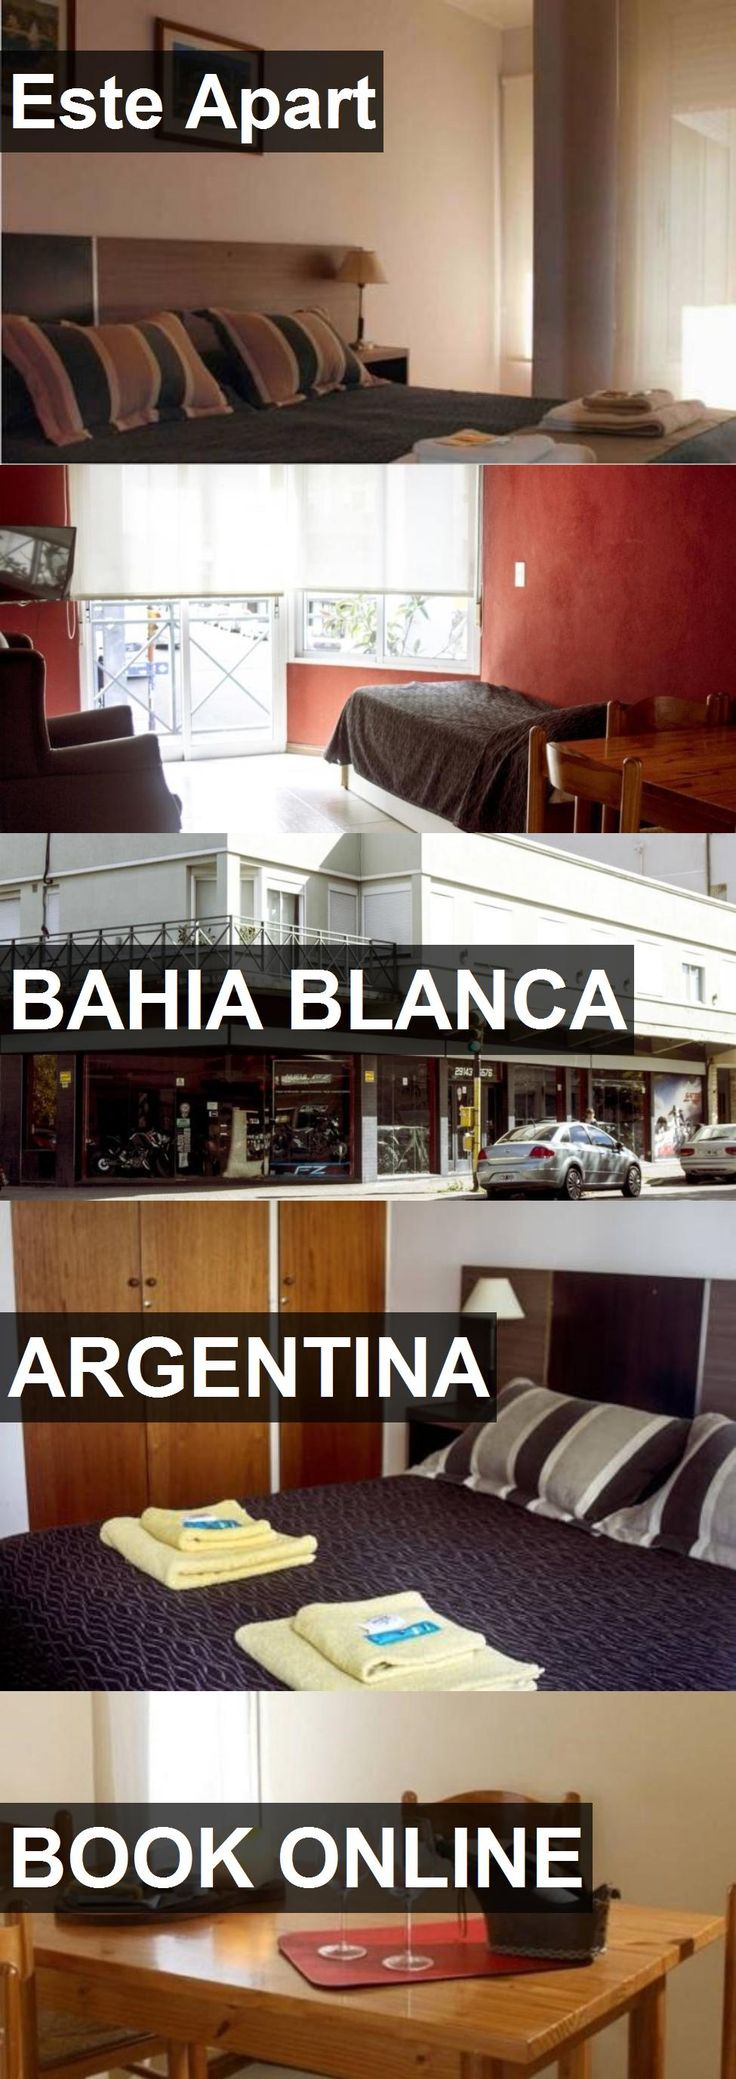 Hotel Este Apart in Bahia Blanca, Argentina. For more information, photos, reviews and best prices please follow the link. #Argentina #BahiaBlanca #travel #vacation #hotel